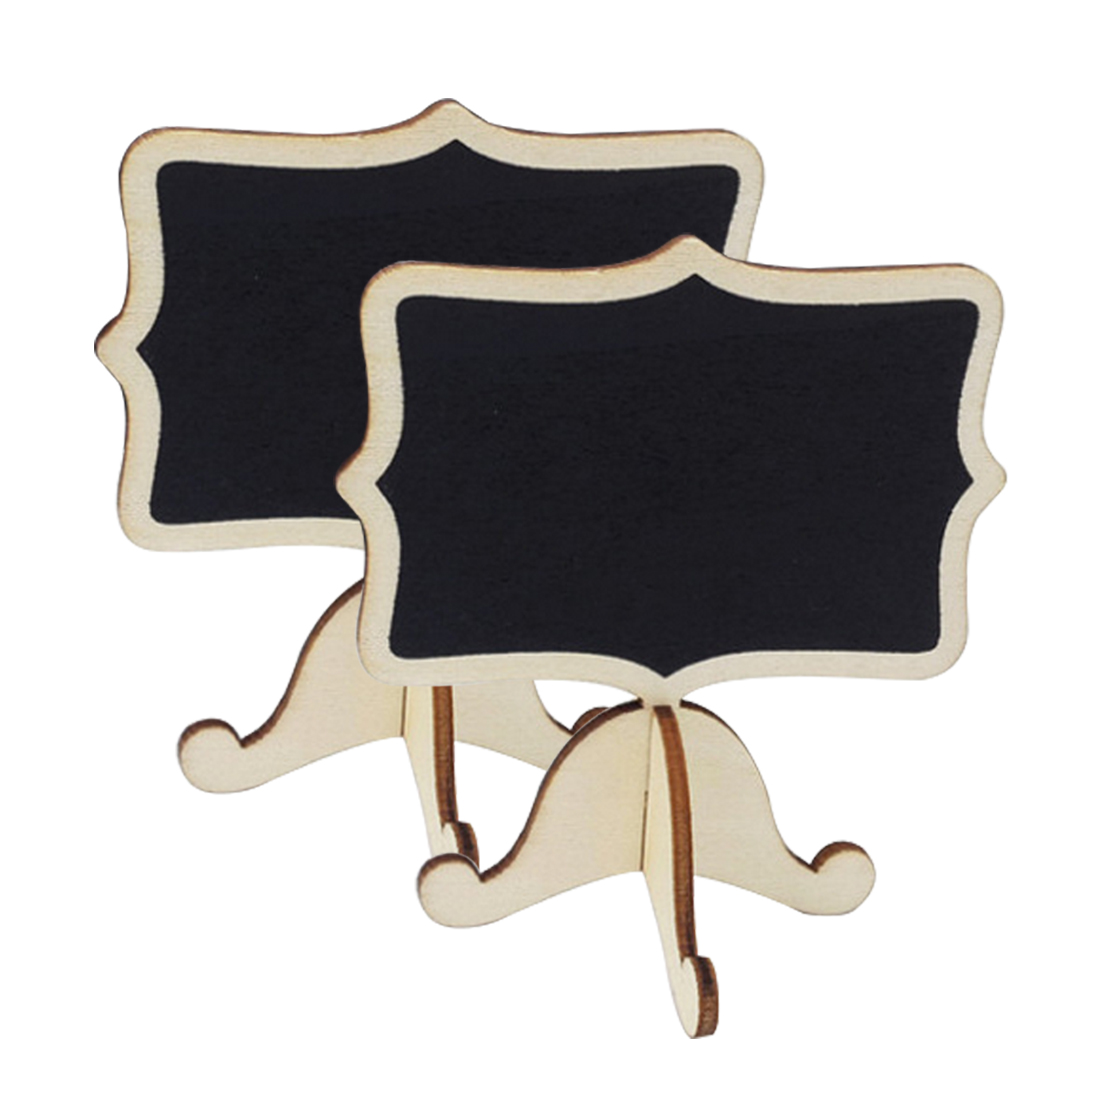 New 10pcs Mini Lace Blackboard Chalkboard Wooden Blackboard Price Stand For New Year Party Christmas Wedding Decoration